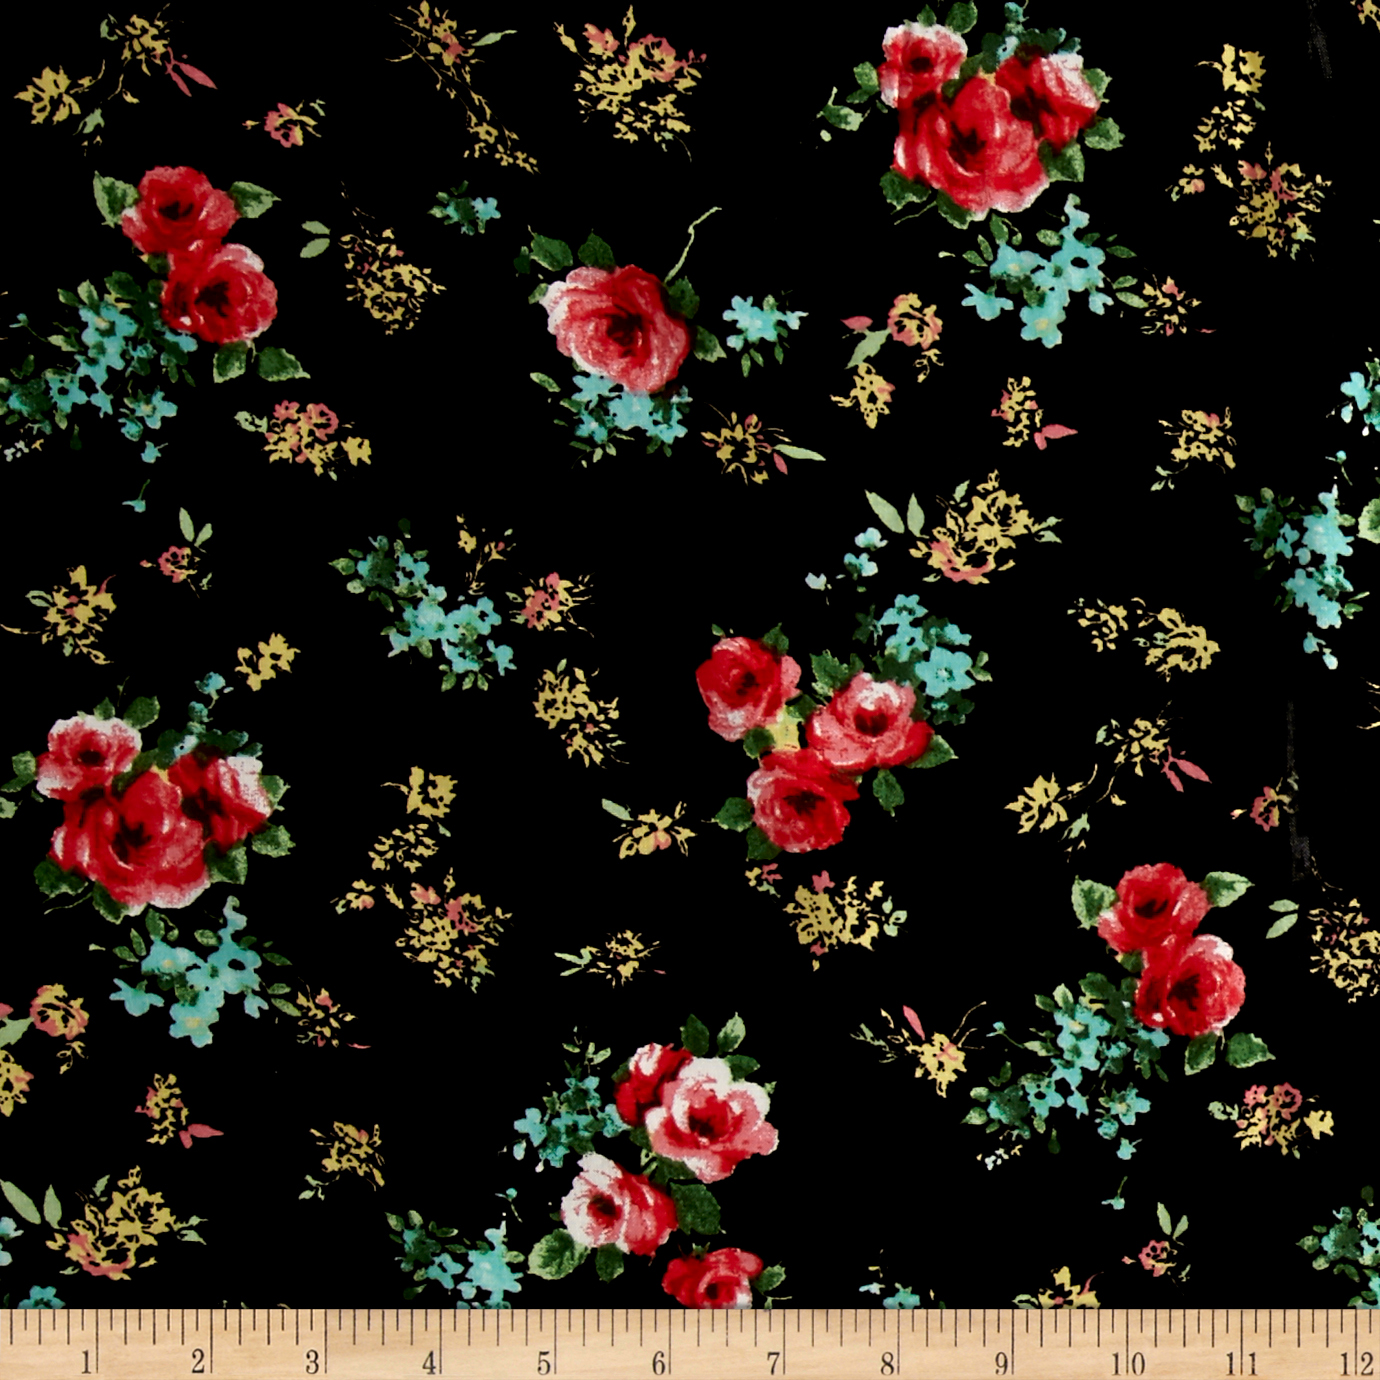 Garden Universe Rayon Challis Black/Light Coral Fabric